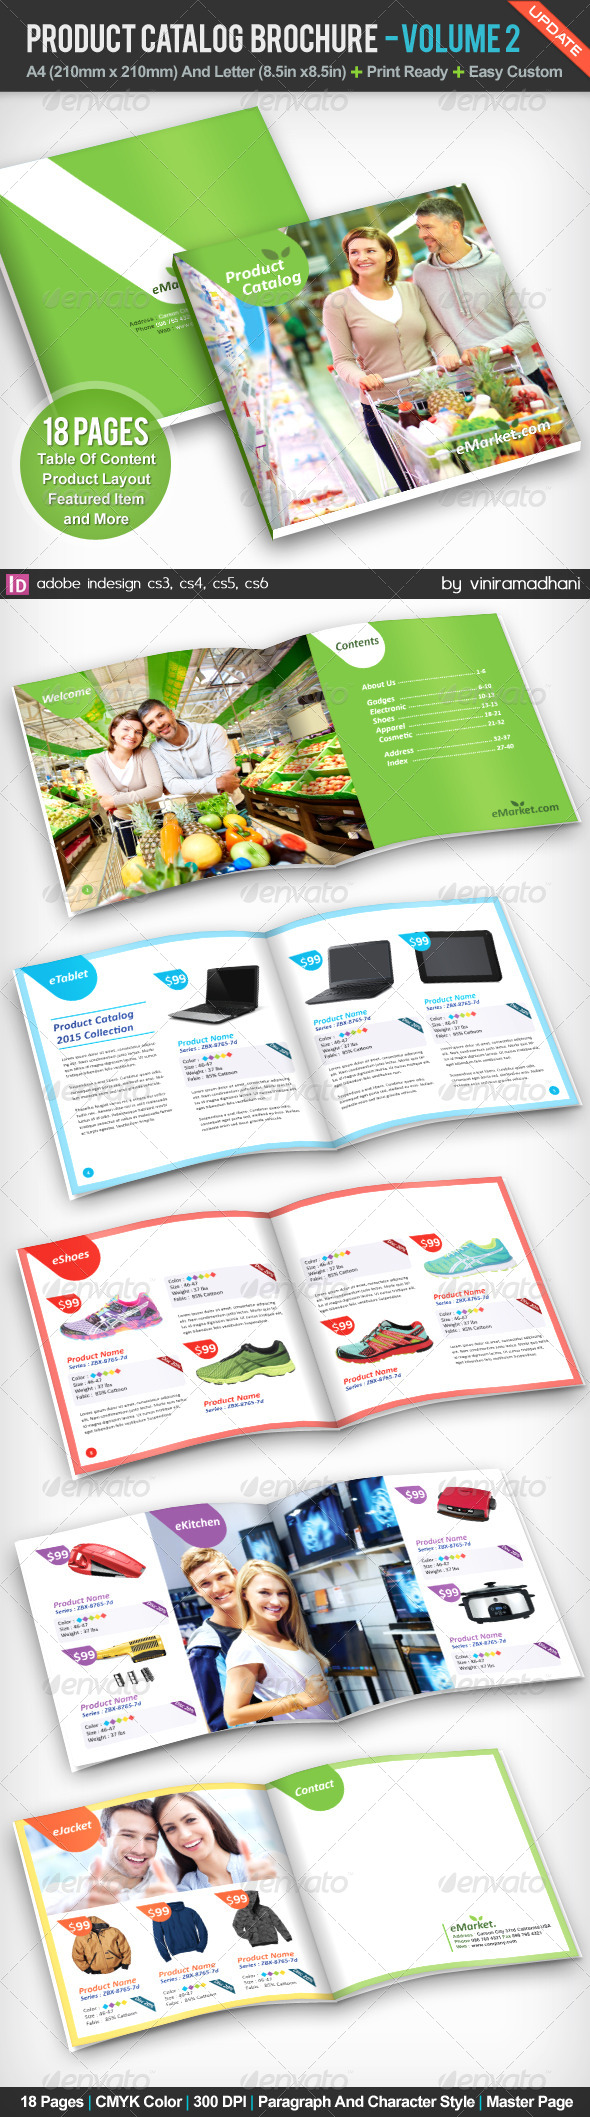 GraphicRiver Product Catalog Brochure 5247713